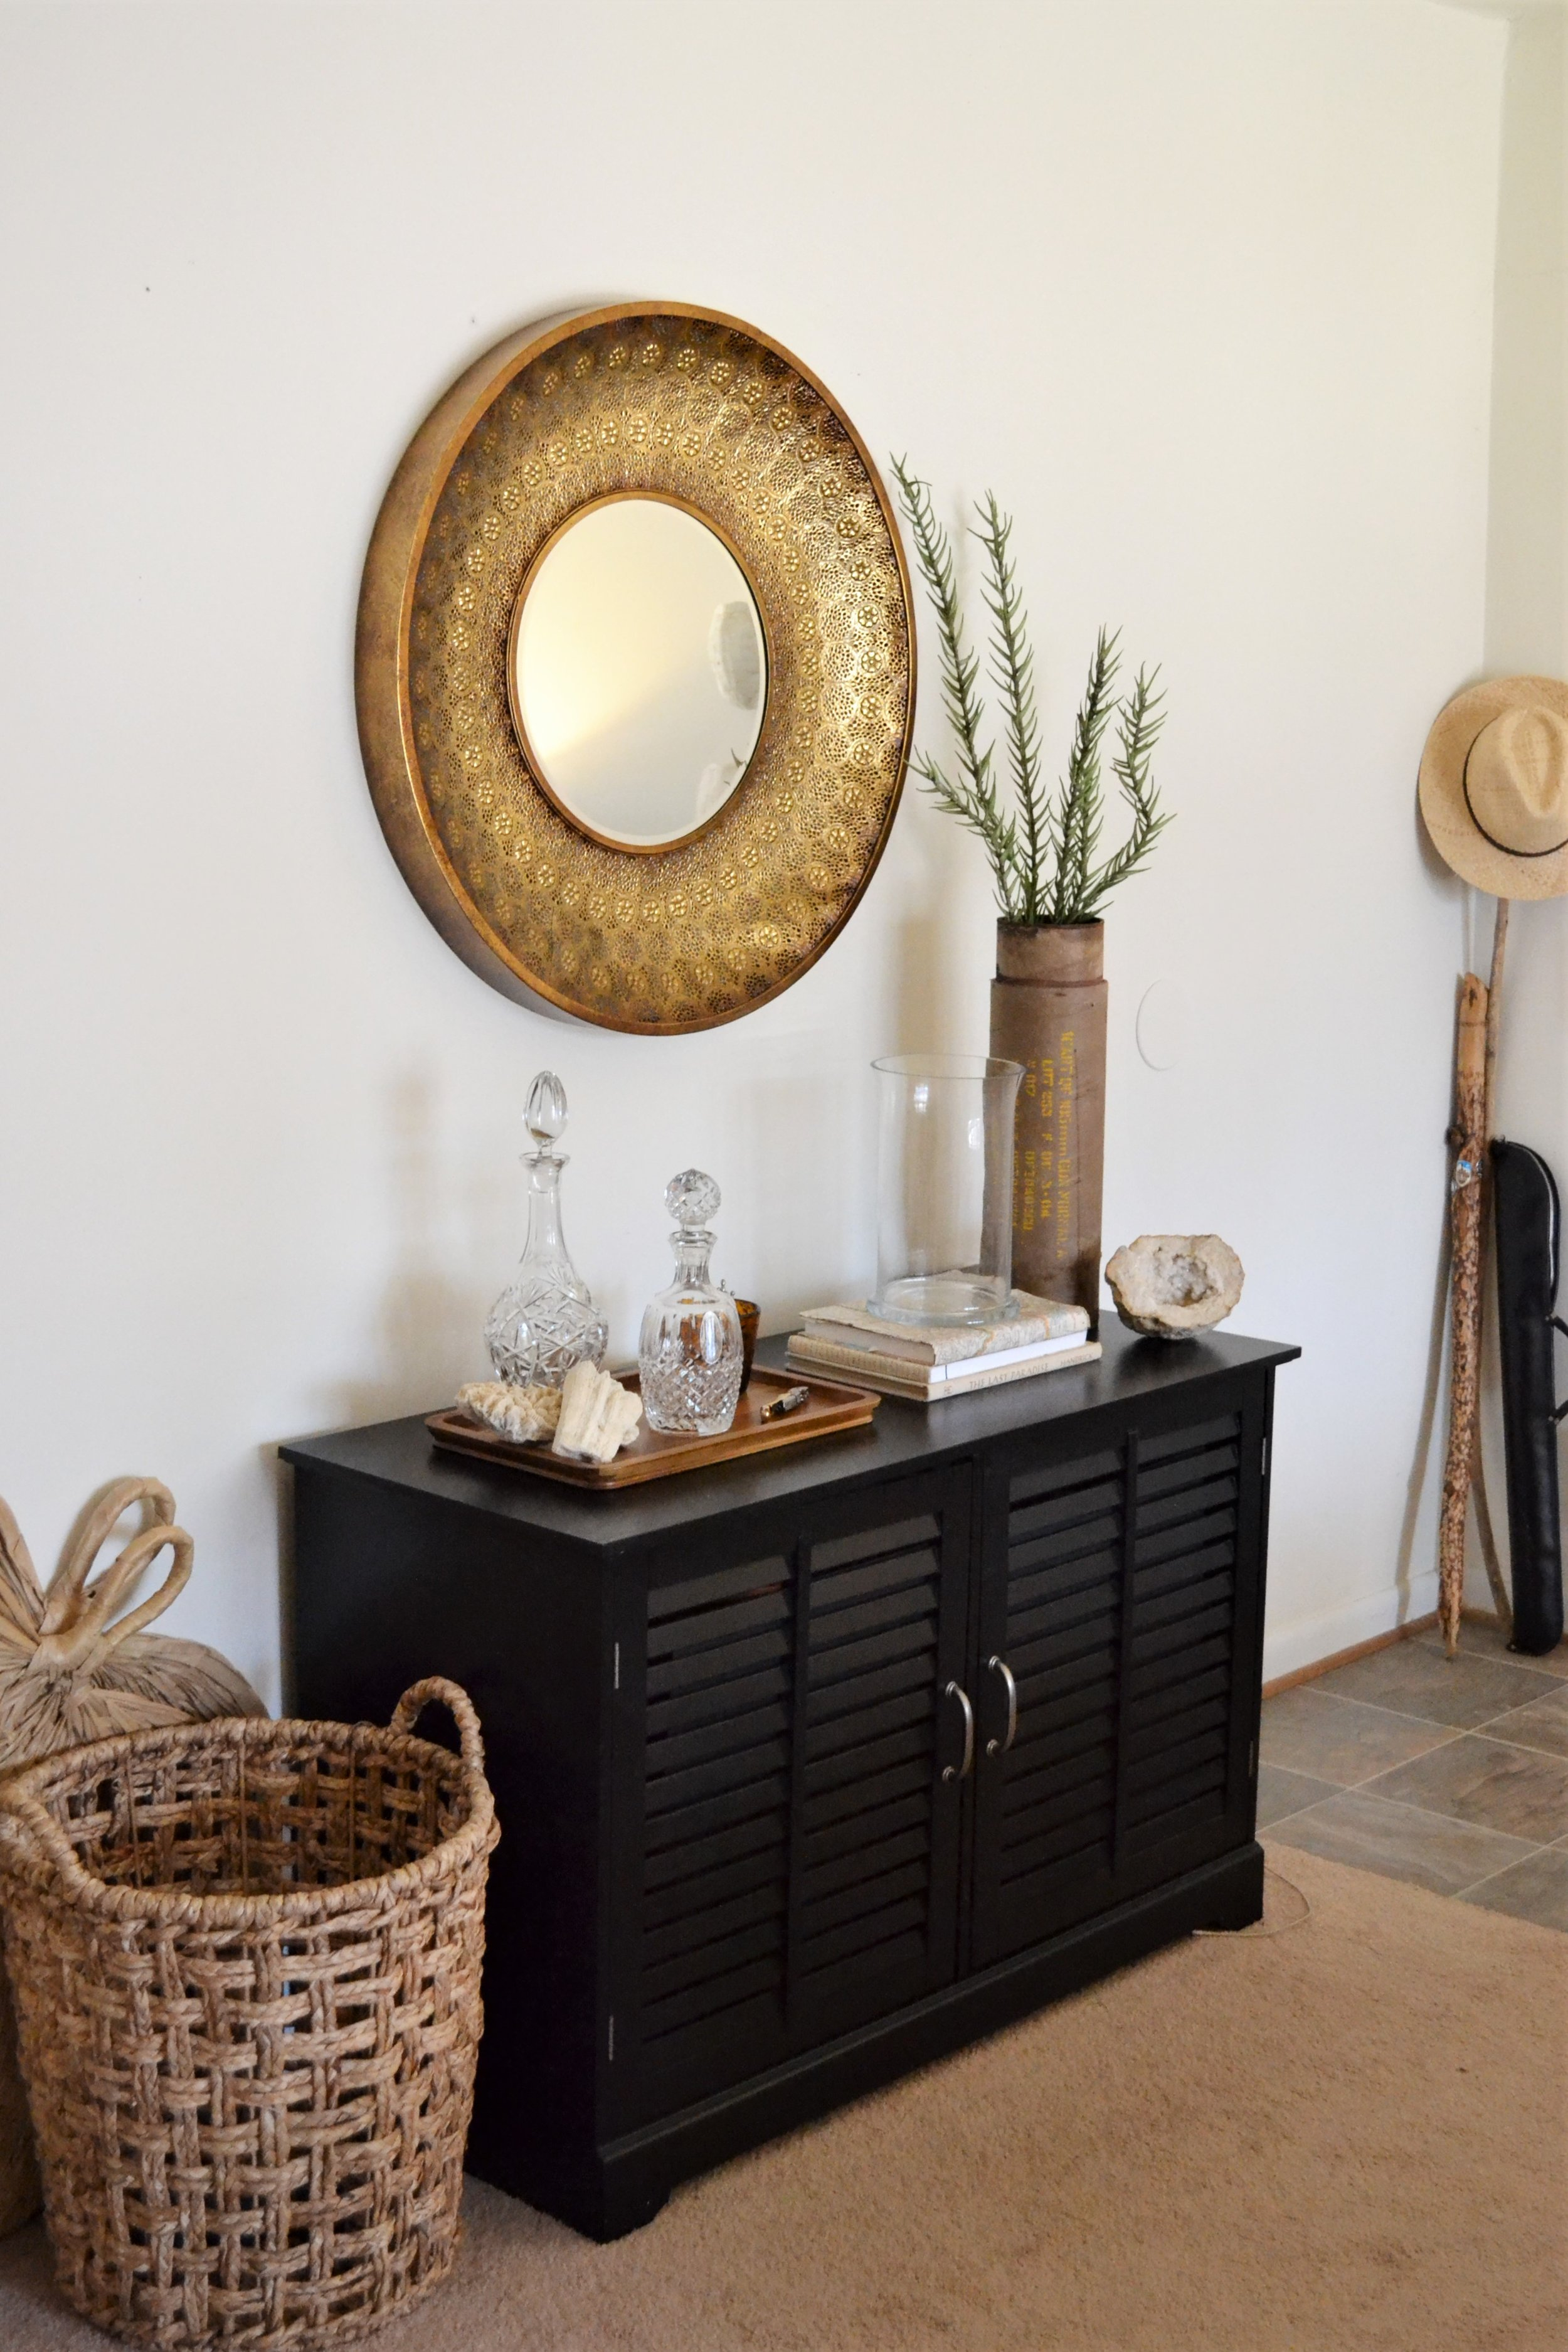 1 Entry Styled 3 Ways - Making Room for Peace 19.JPG